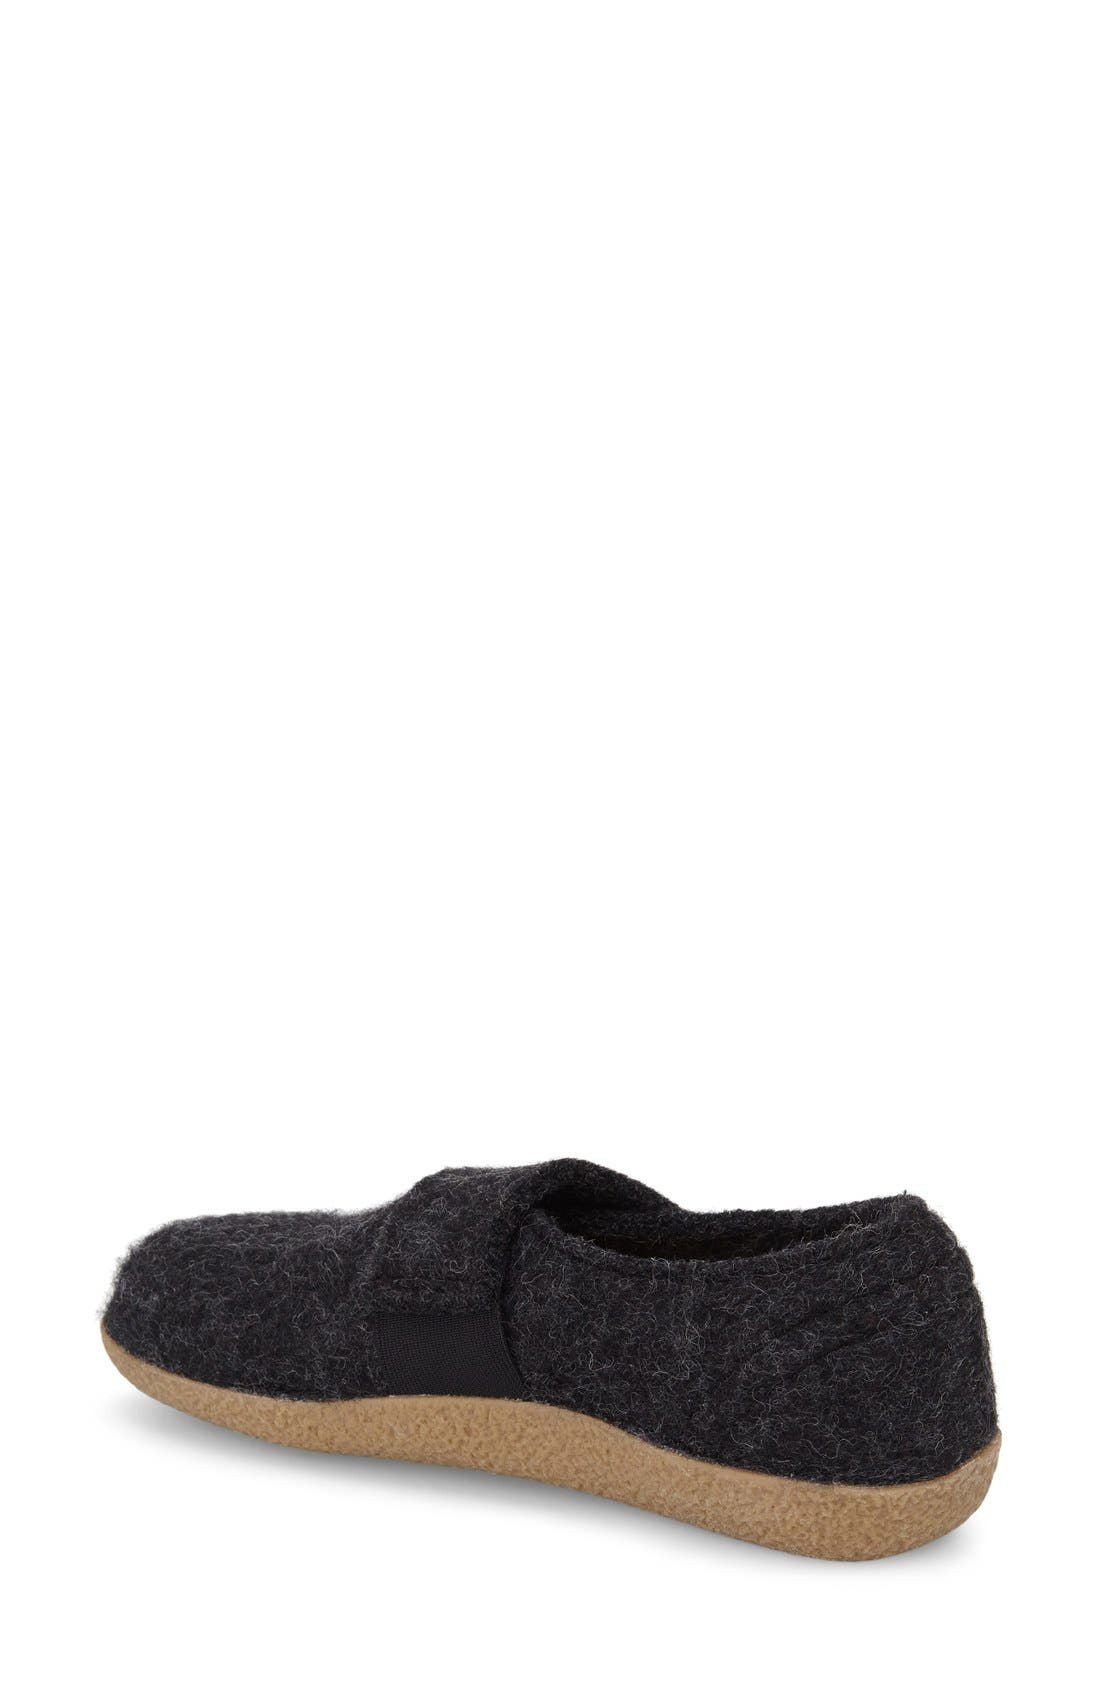 Camden Water Repellent Slipper,                             Alternate thumbnail 2, color,                             Charcoal Wool